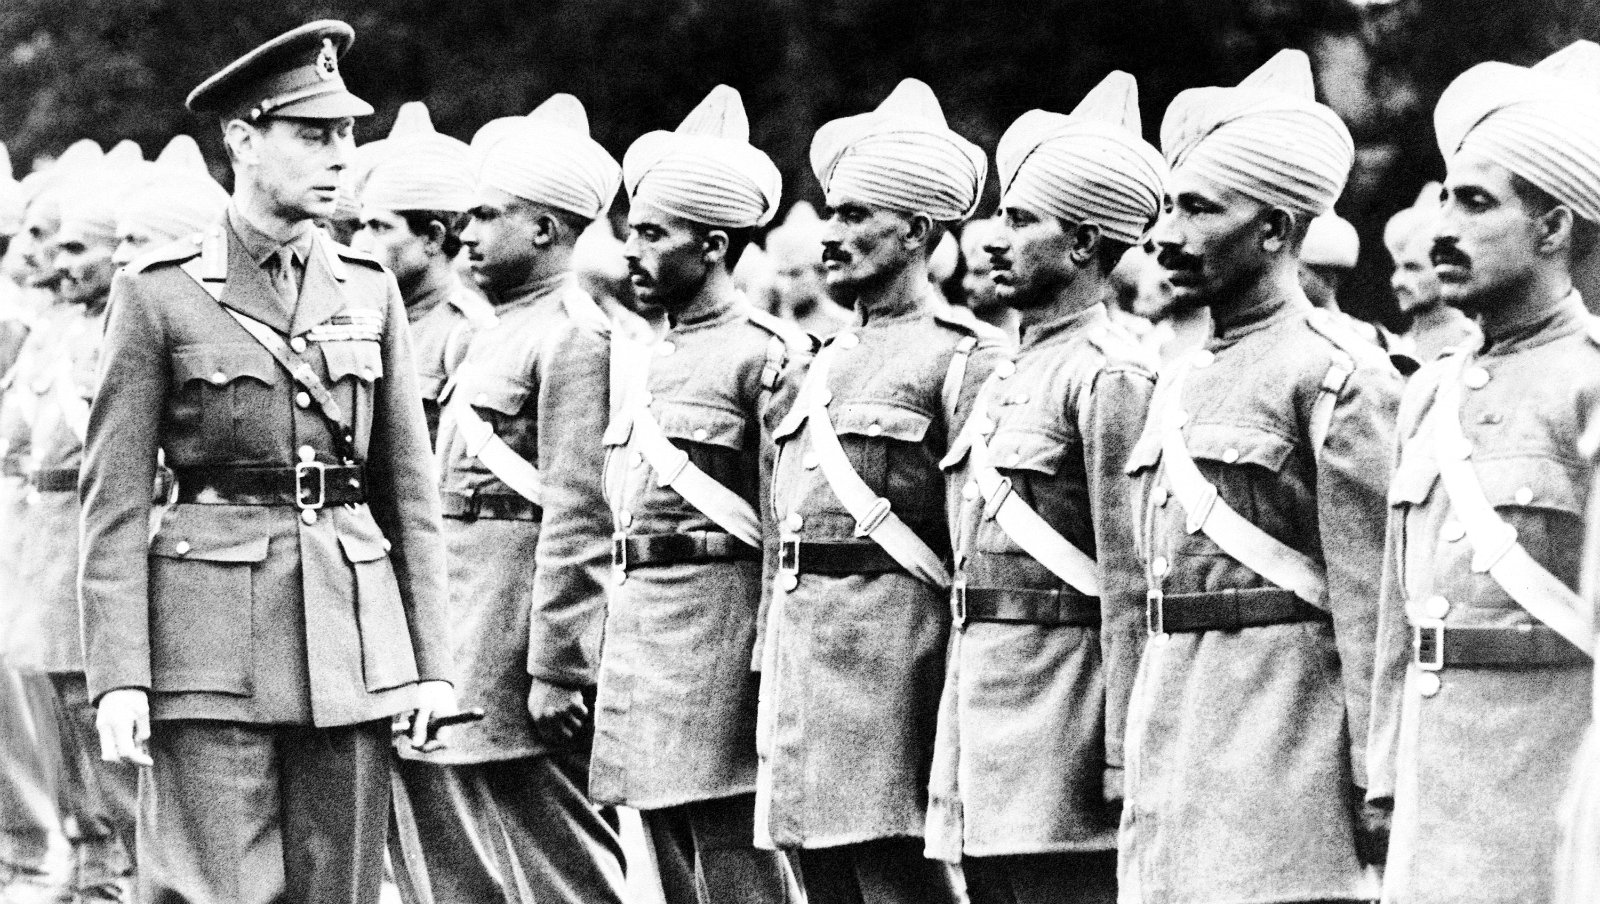 indian independence and ww2 The major cause of gandhi's independence movement in india was the fact that the british had colonized india and were ruling it for the benefit of britain rather than for the benefit of the indians.